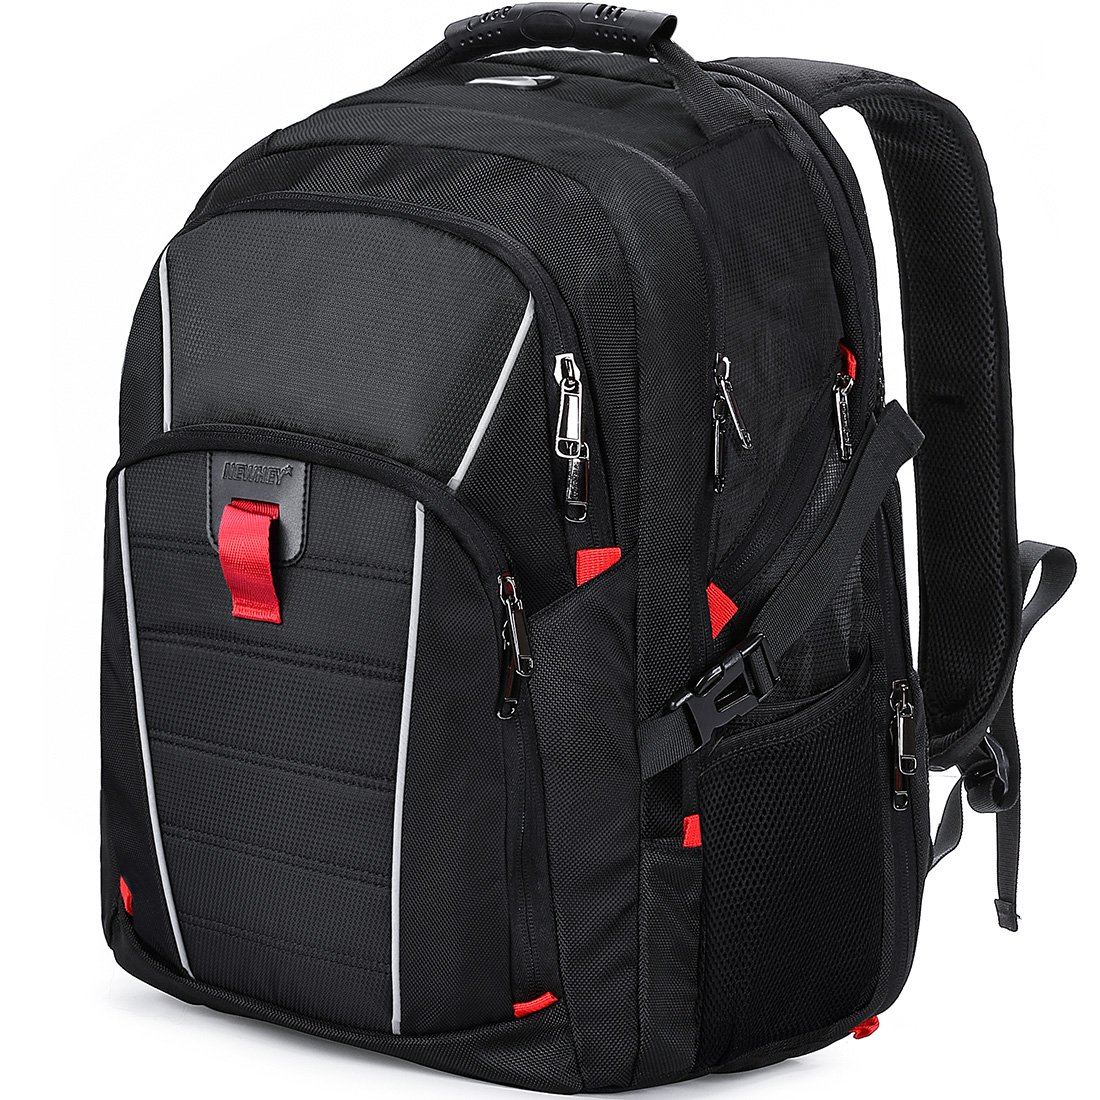 Laptop Backpack Travel 17.3 Inch Waterproof USB Charging Port Business College Students Gaming Computer Bag Large Capacity Backpack for Men Women Black